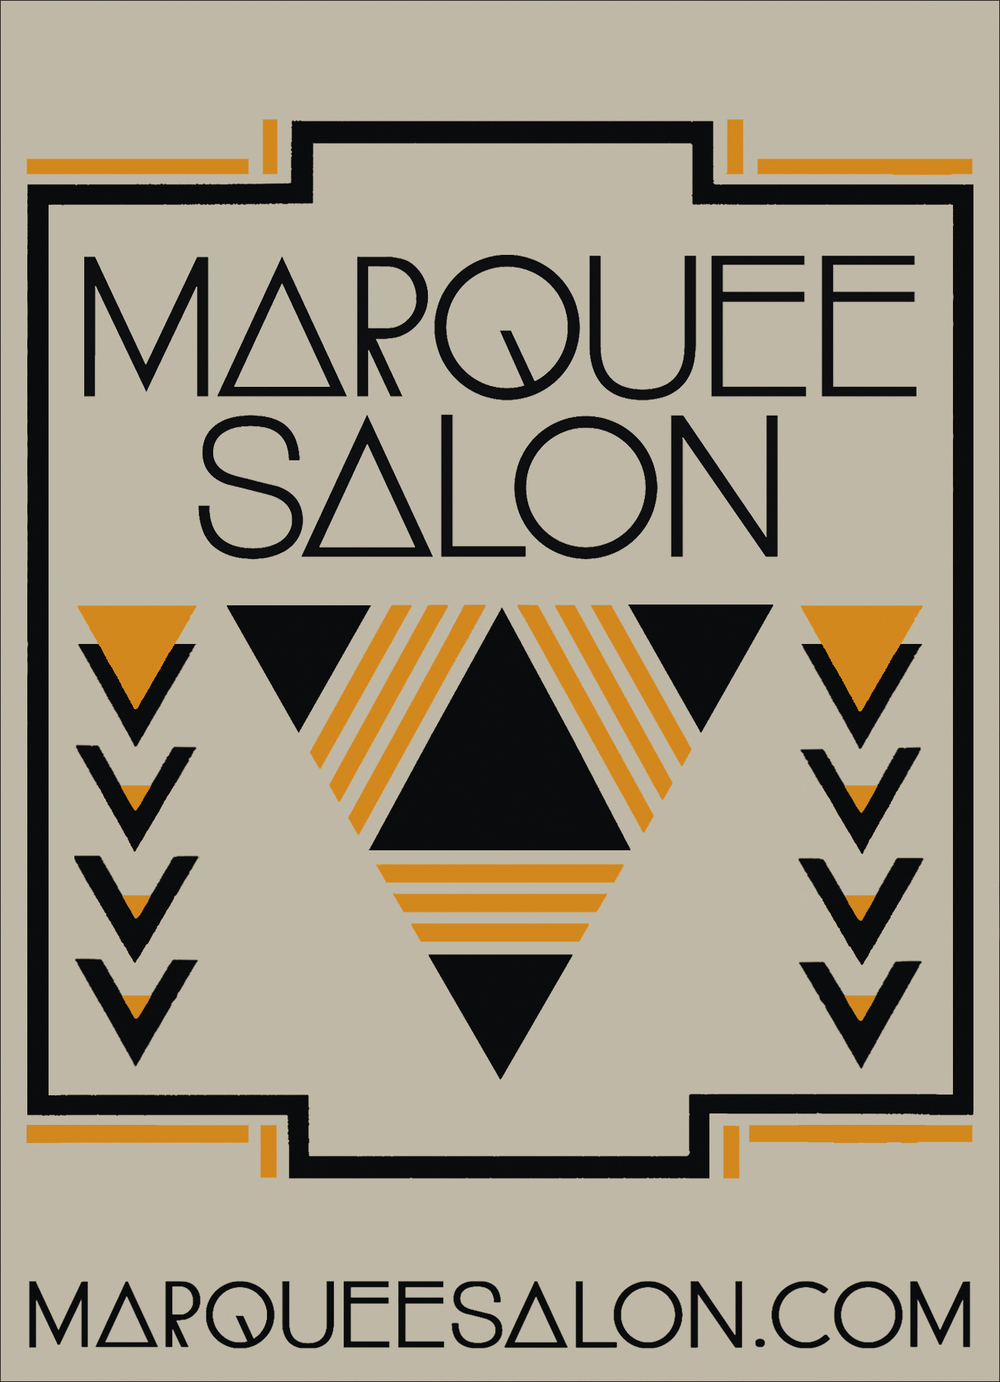 STARCADE DESIGNS FOR MARQUEE SALON / SIGNAGE DESIGN FOR COPPER LEAF APPLICATION / ©MARQUEE SALON              .